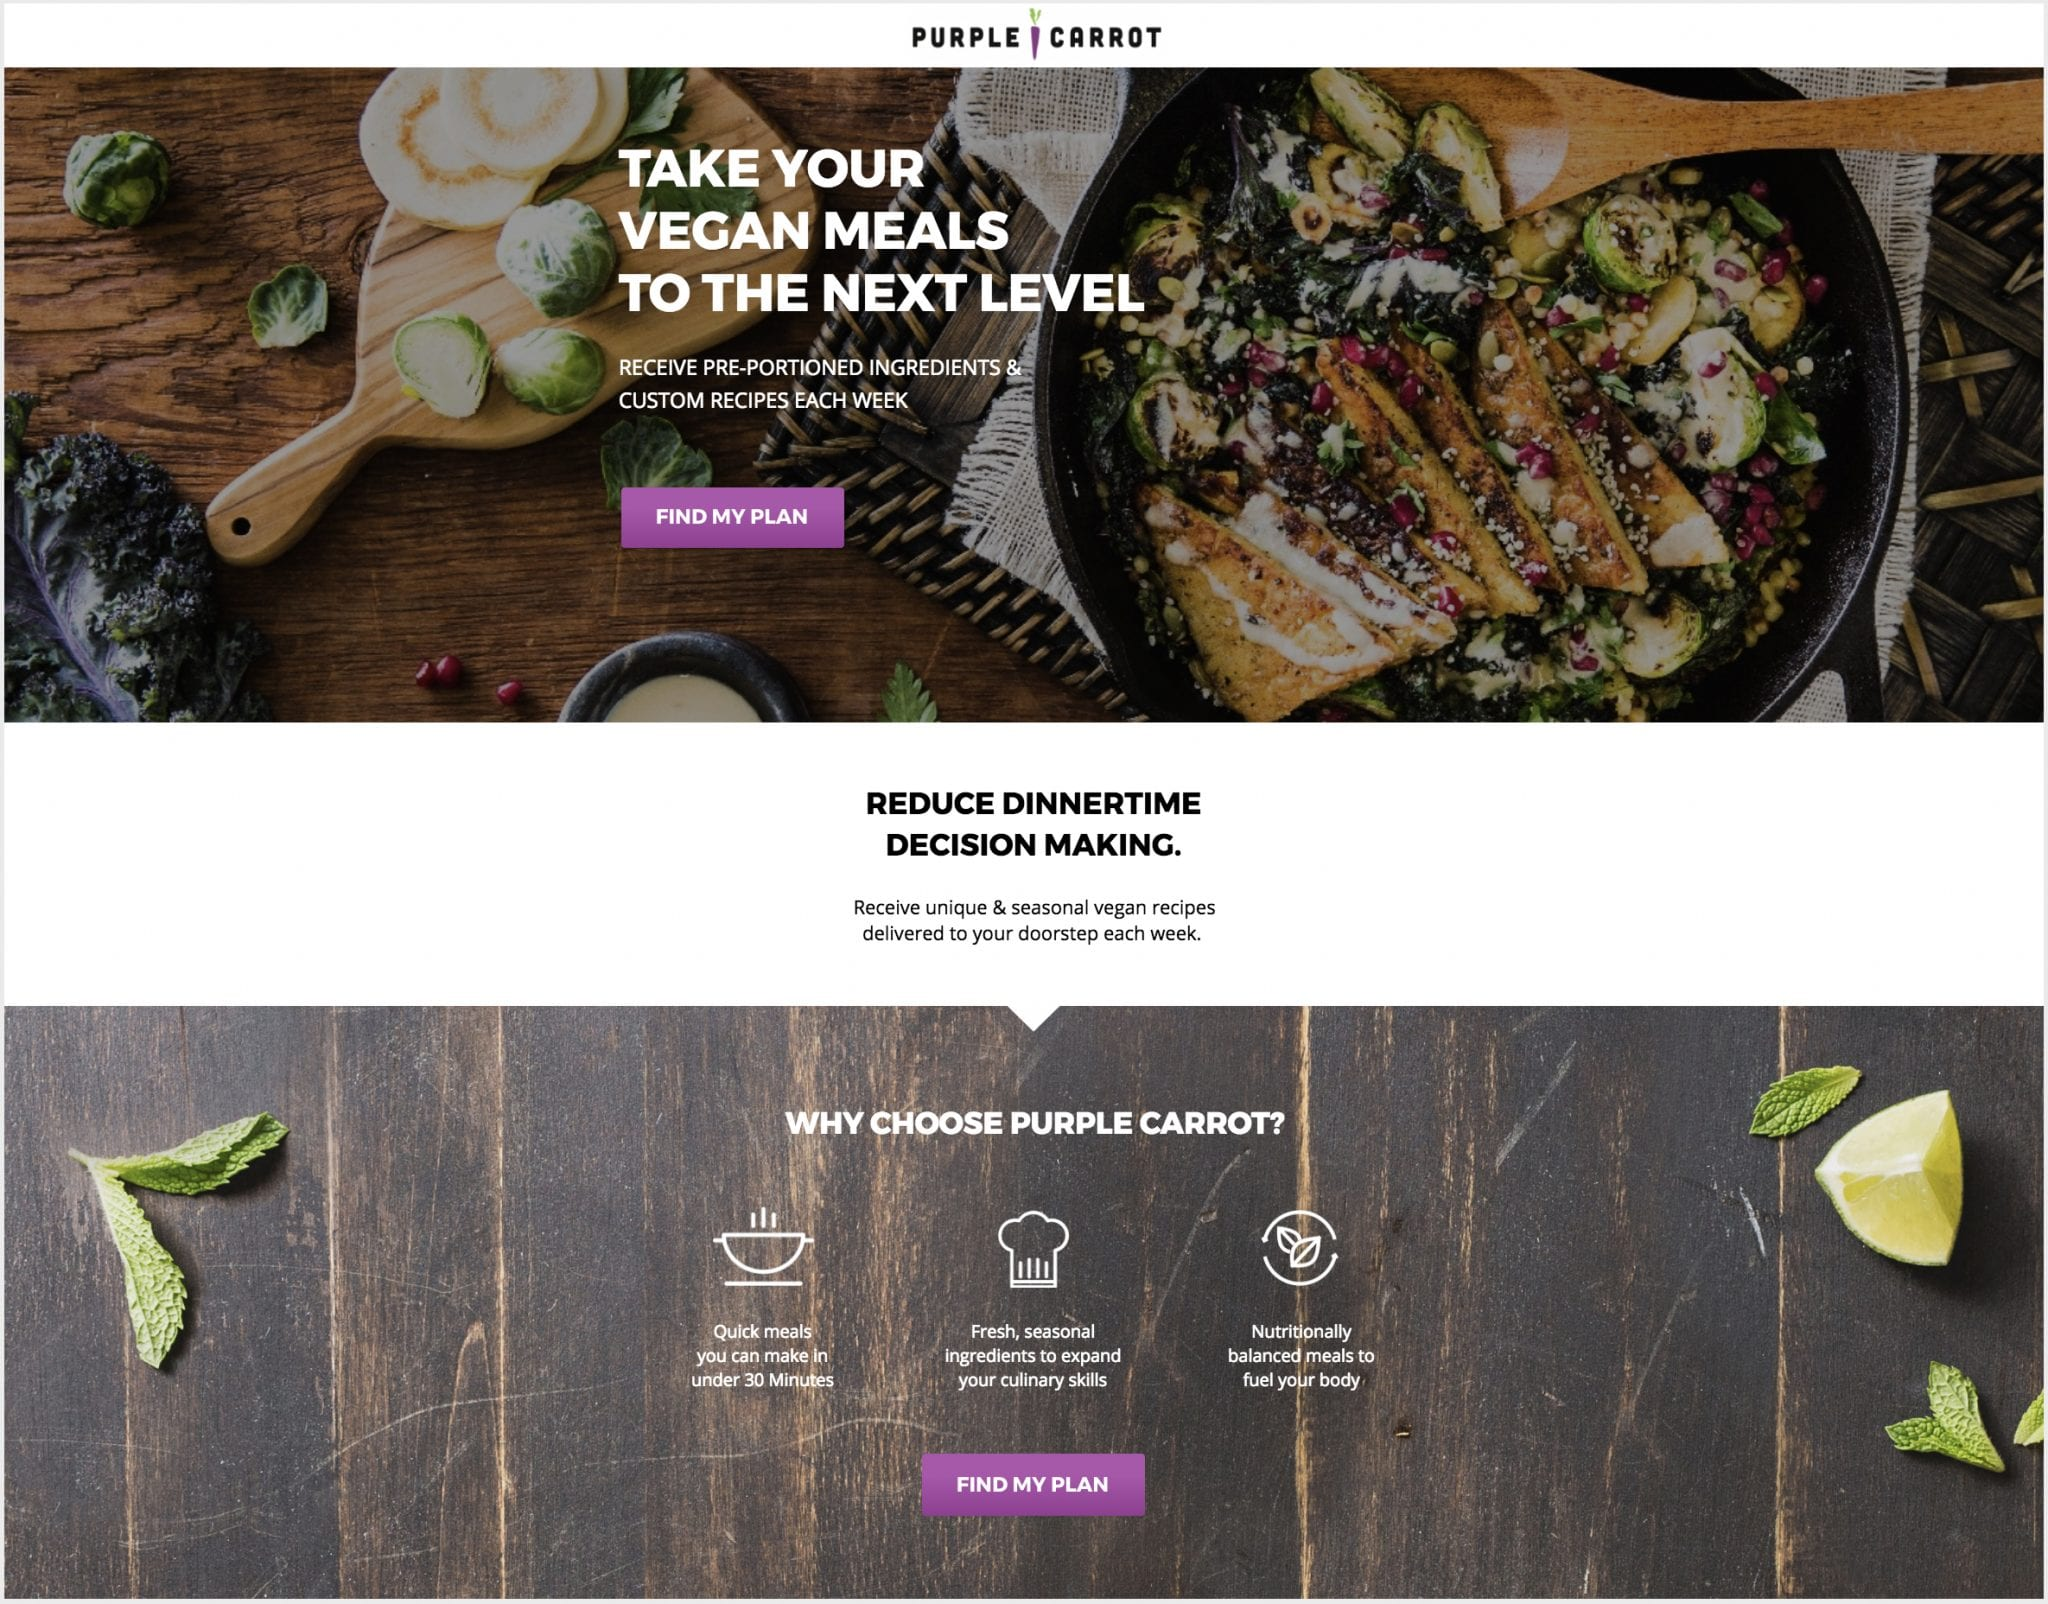 Purple Carrot's landing page